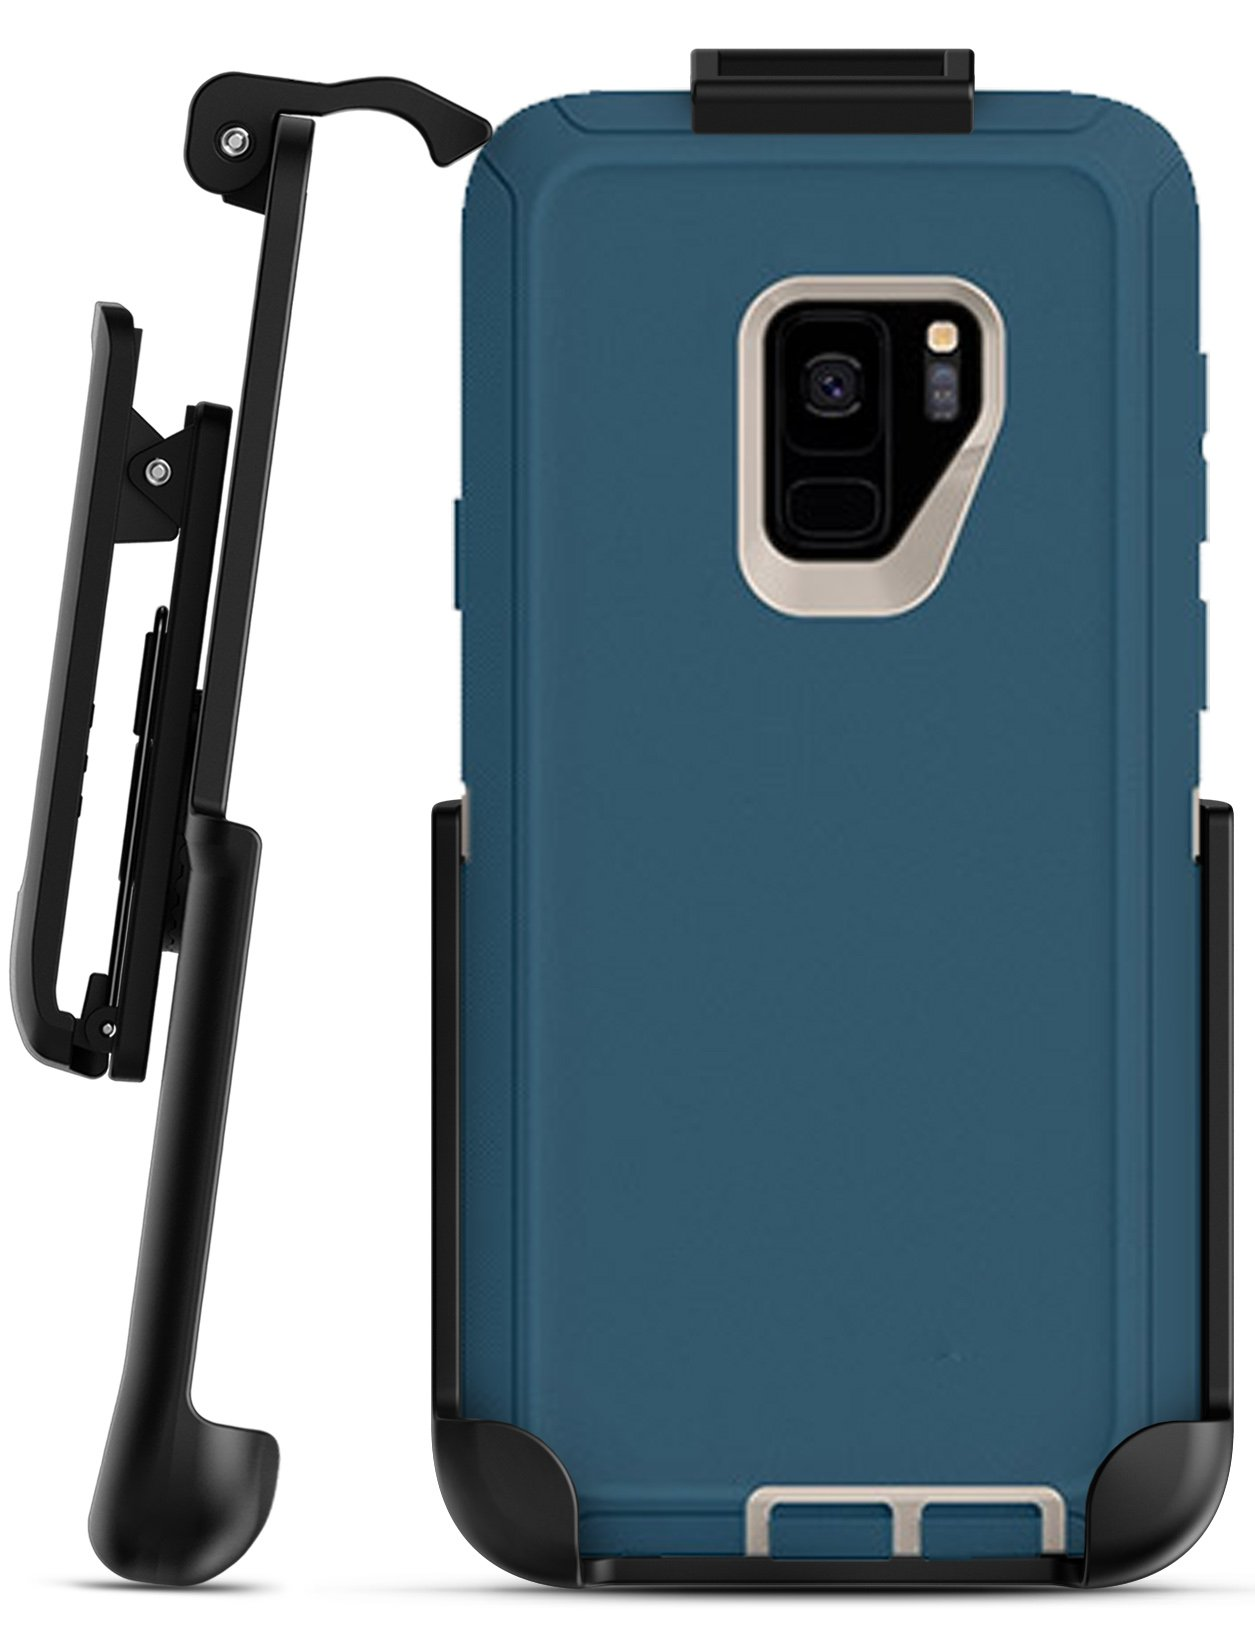 low priced 748d7 9236b Galaxy S9 Otterbox Defender Holster